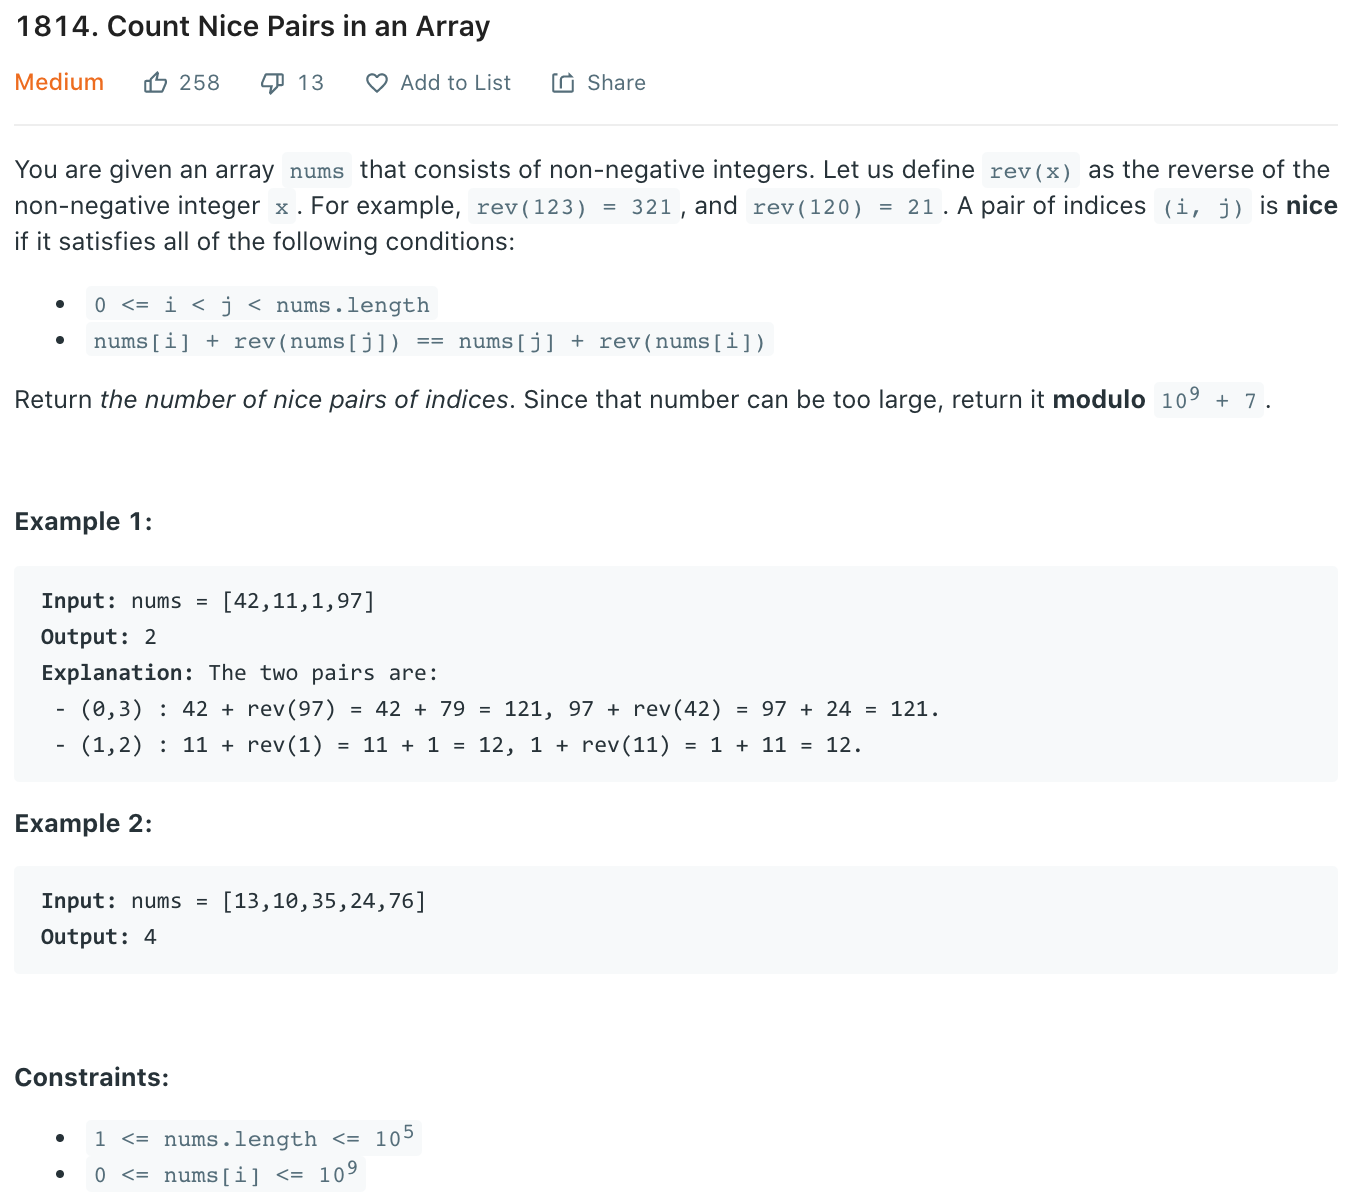 Count Nice Pairs in an Array